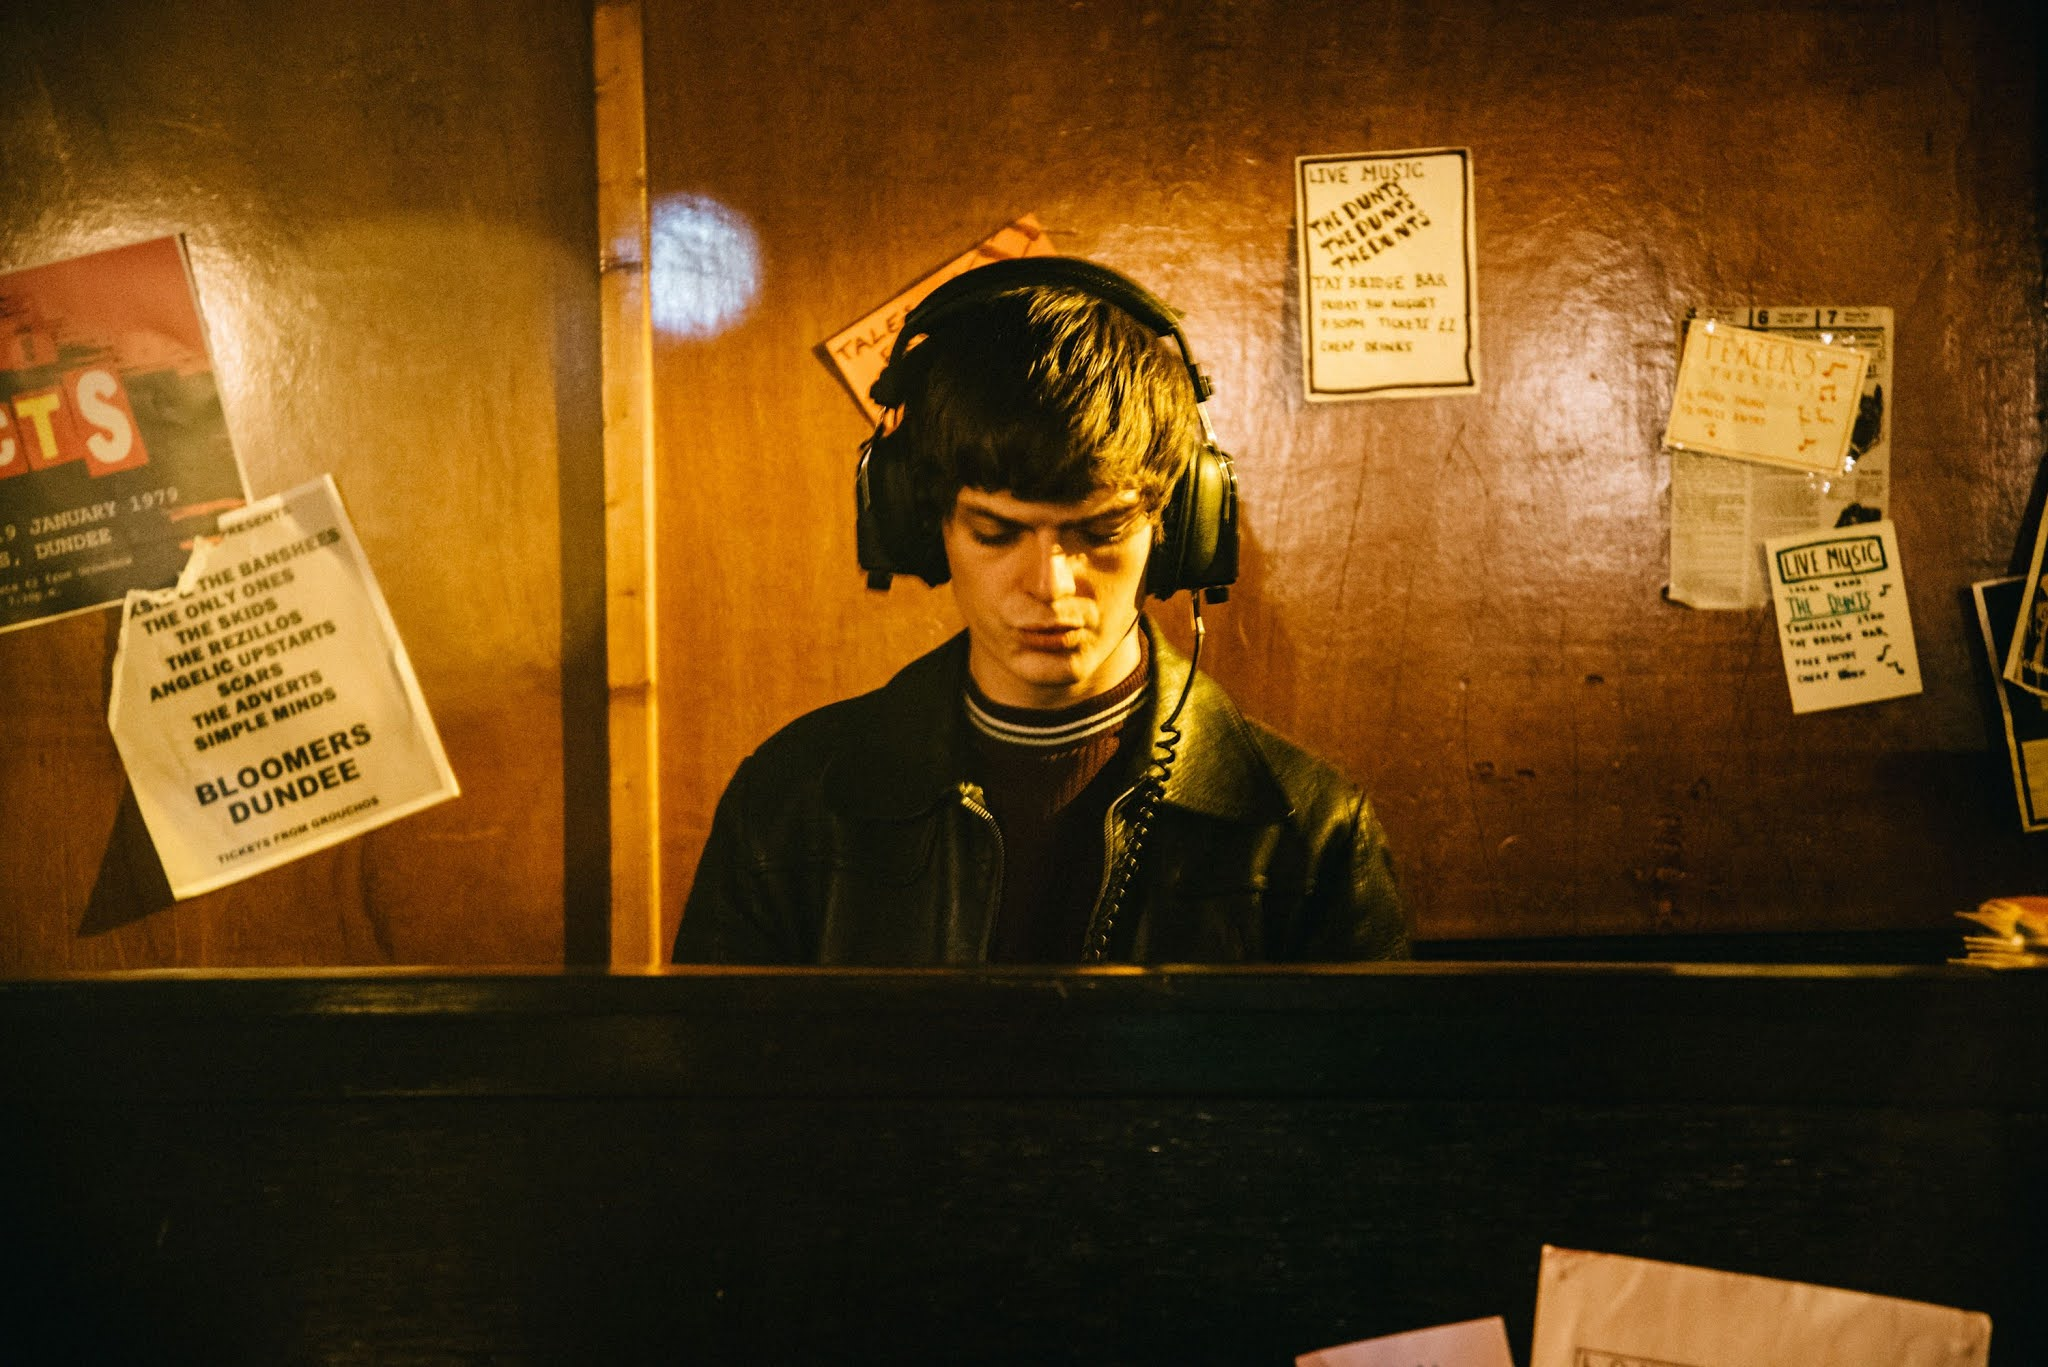 Schemers (2020) | Conor Berry is Davie Mclean | Independent Film Review